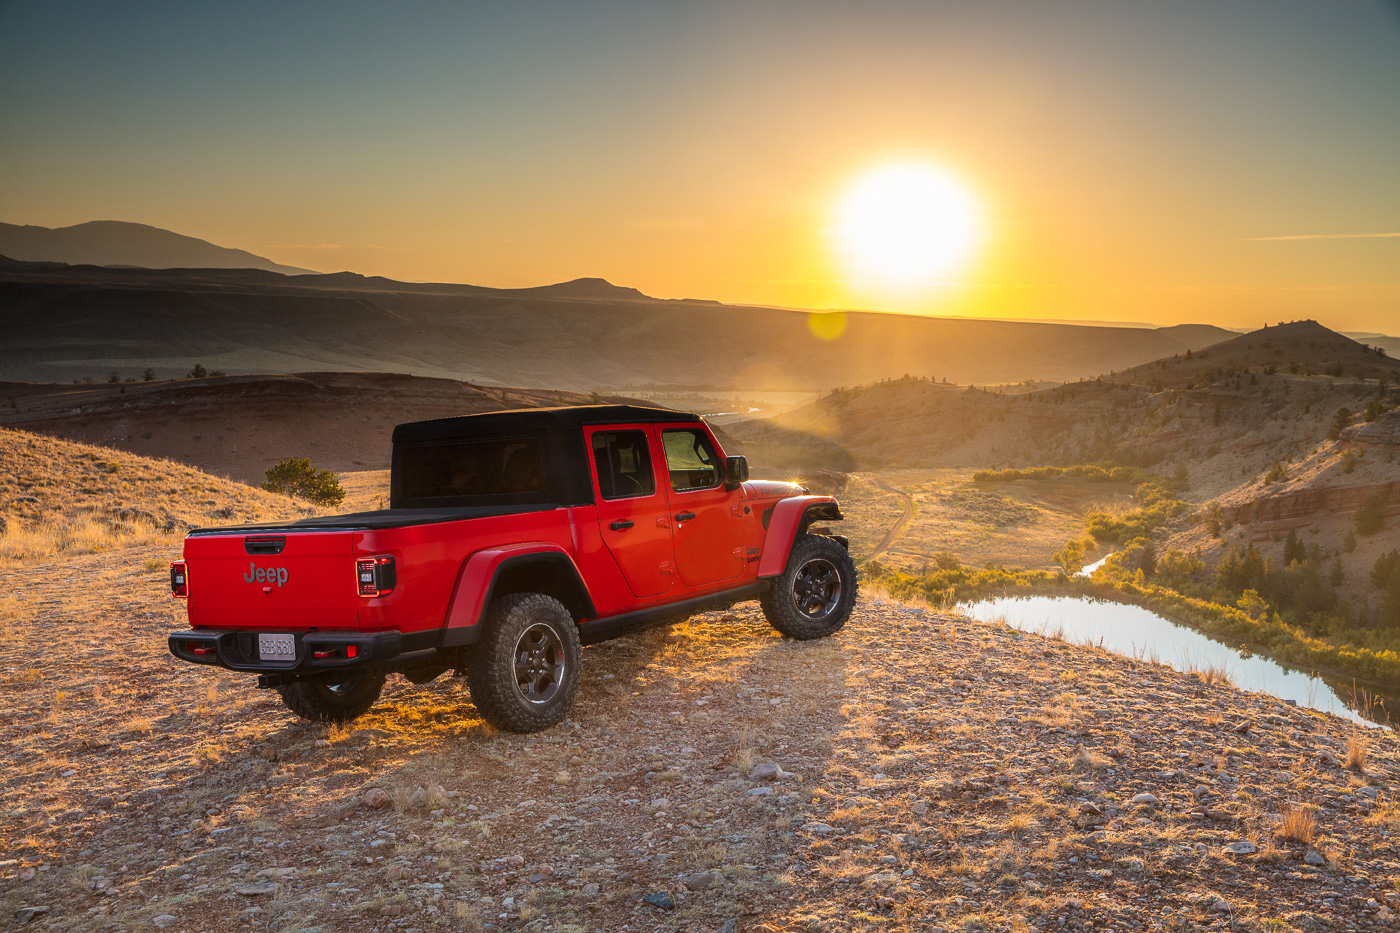 Jeep-Gladiator-Rubicon-79.jpg